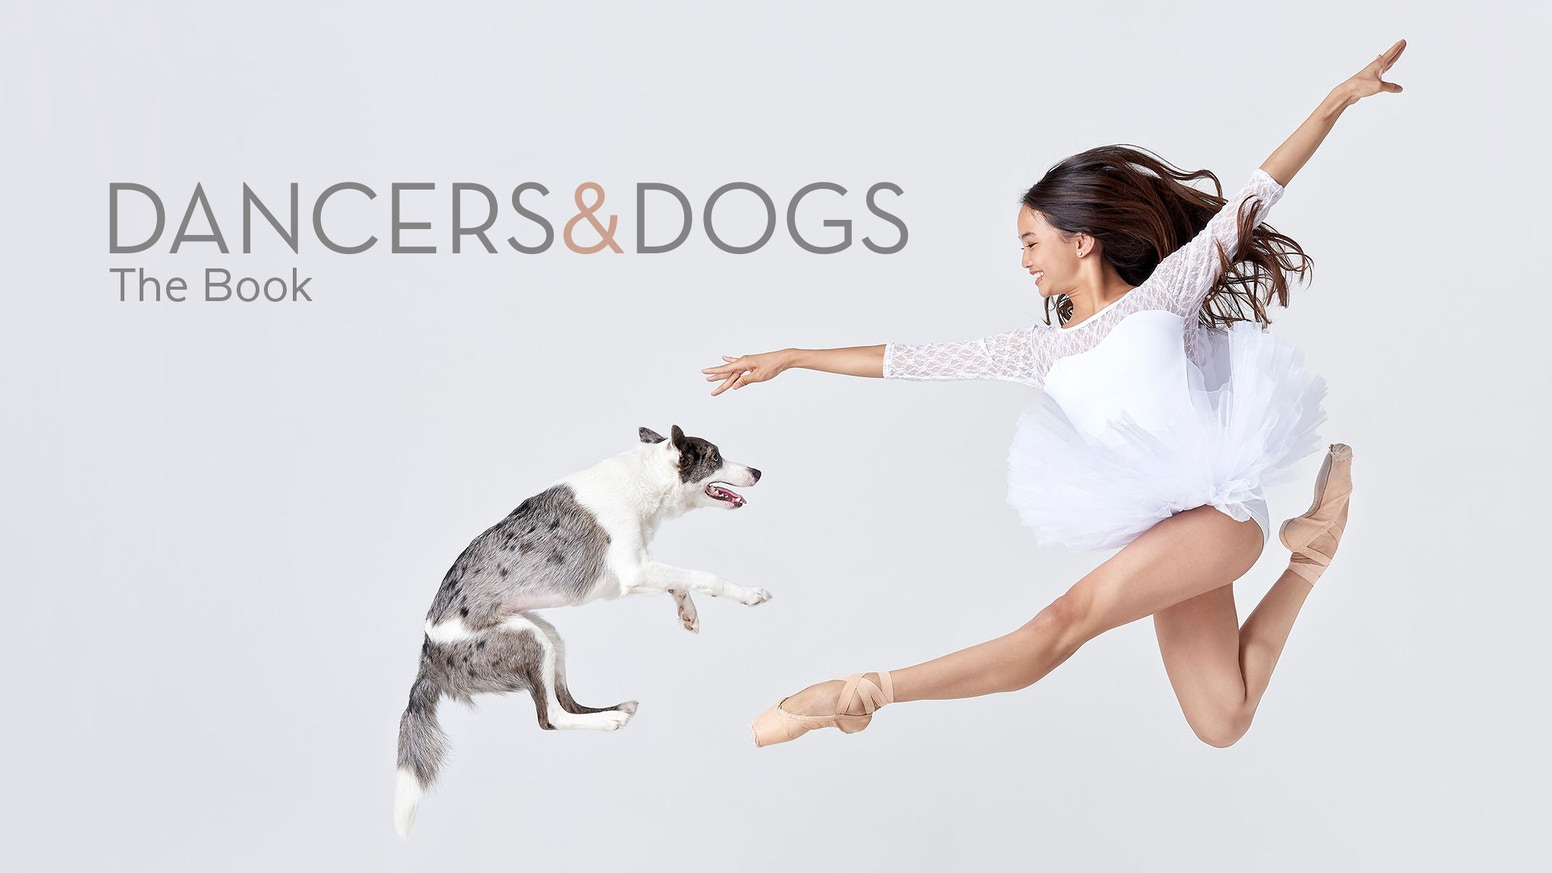 A 216 page art book, capturing dynamic dancer and dog duos. Coming in November!